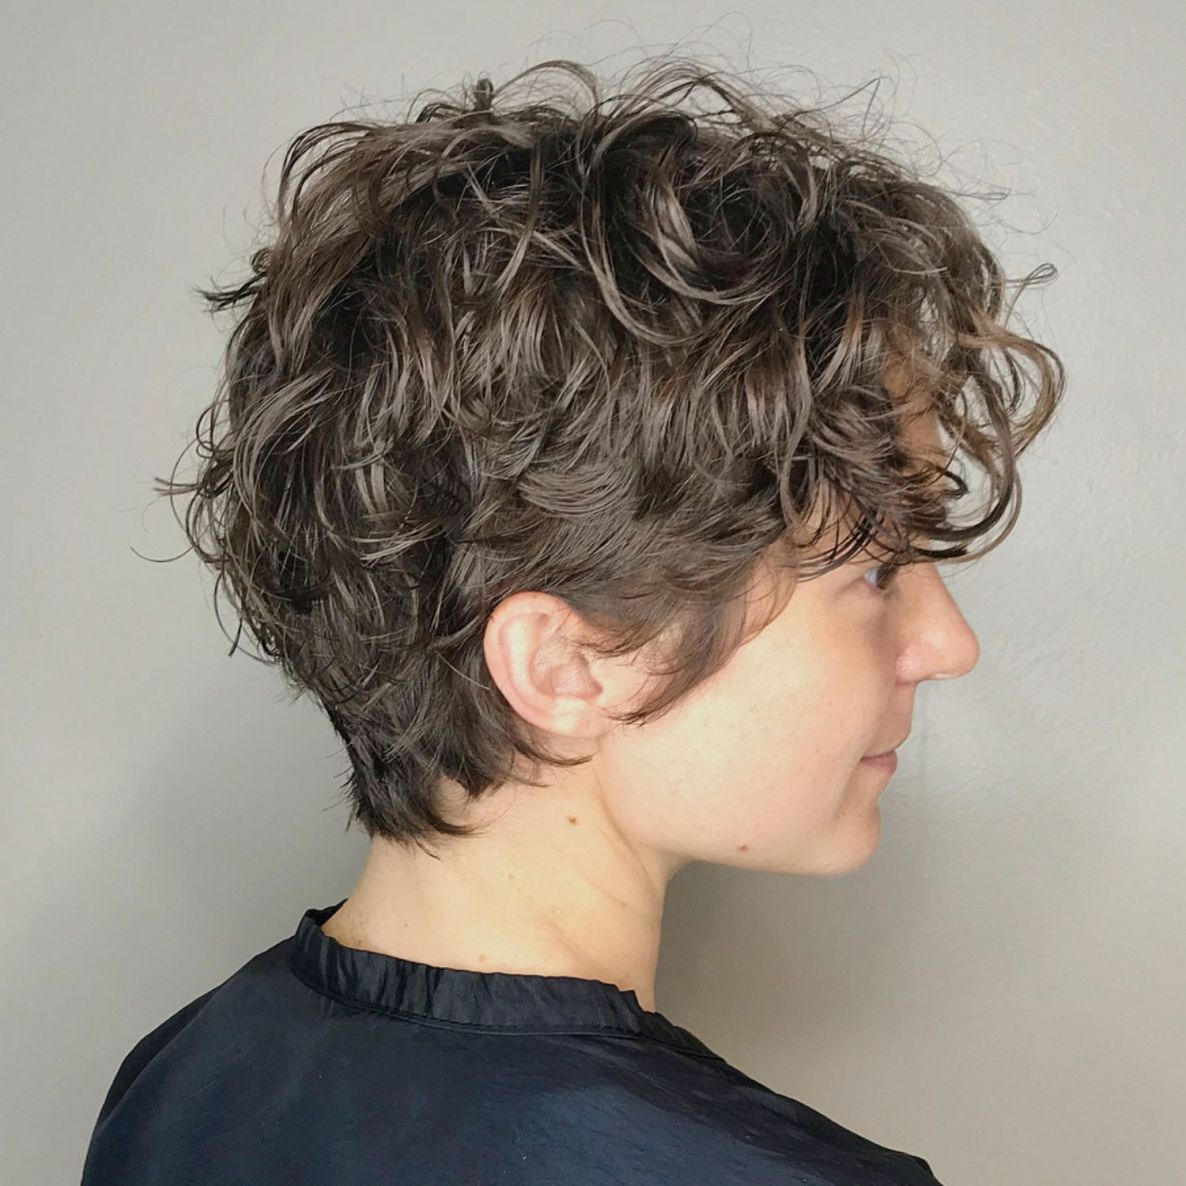 19 Curly Short Hairstyles 9 Messy Curly Short Hair Messy Curlyhair Shorthair Hair Styles Short Curly Haircuts Short Hair Styles